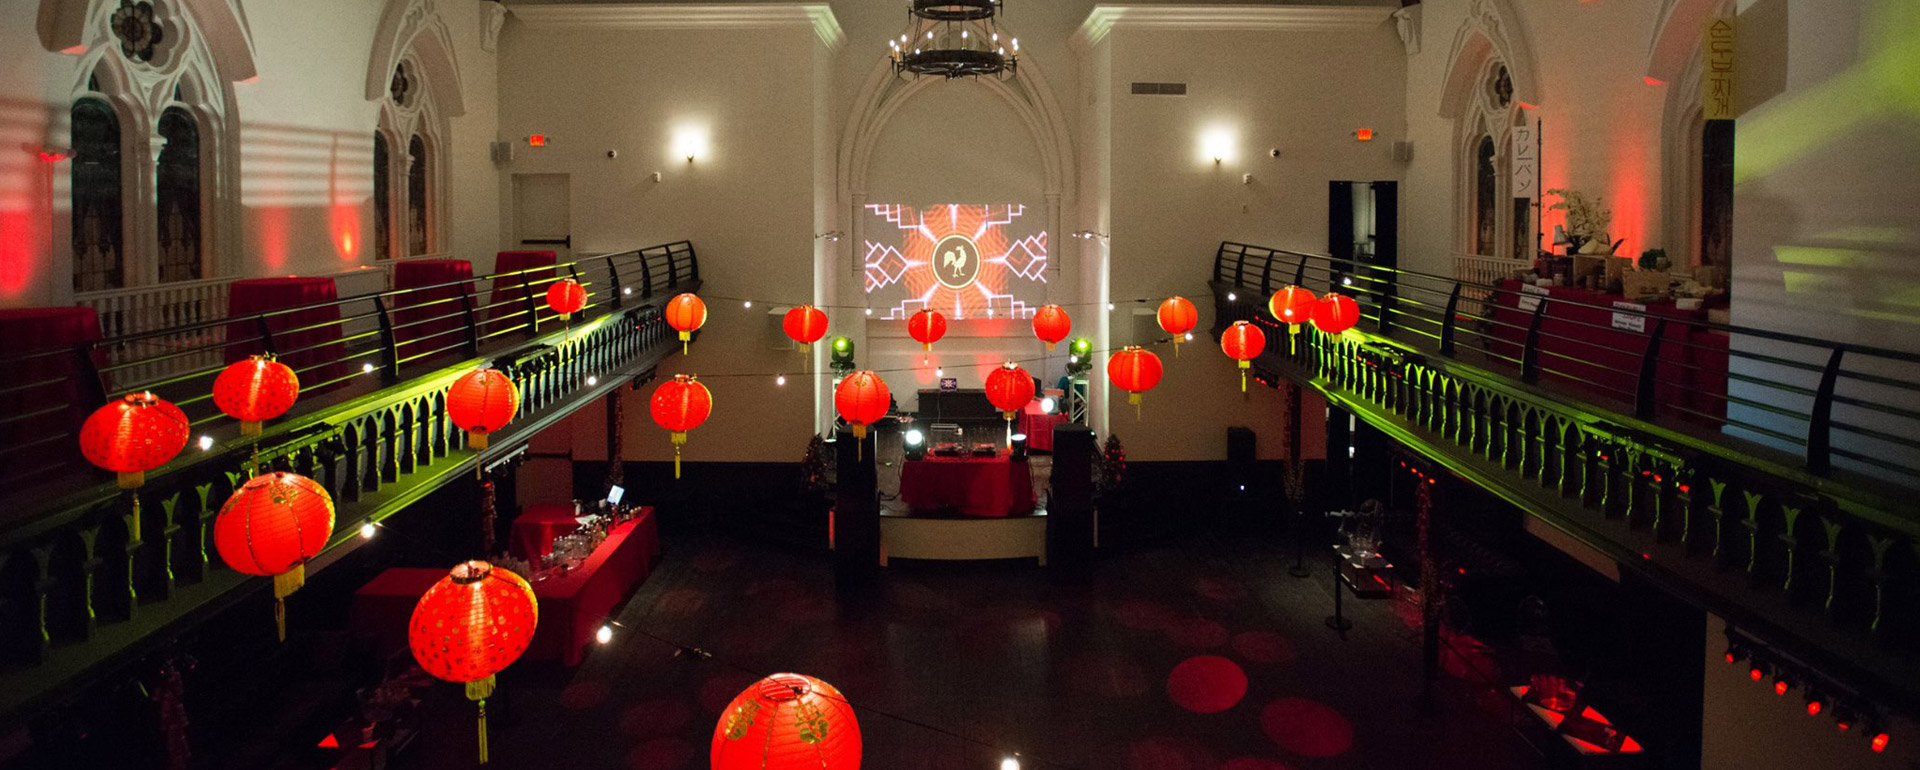 Chinese New Year event at The Transept